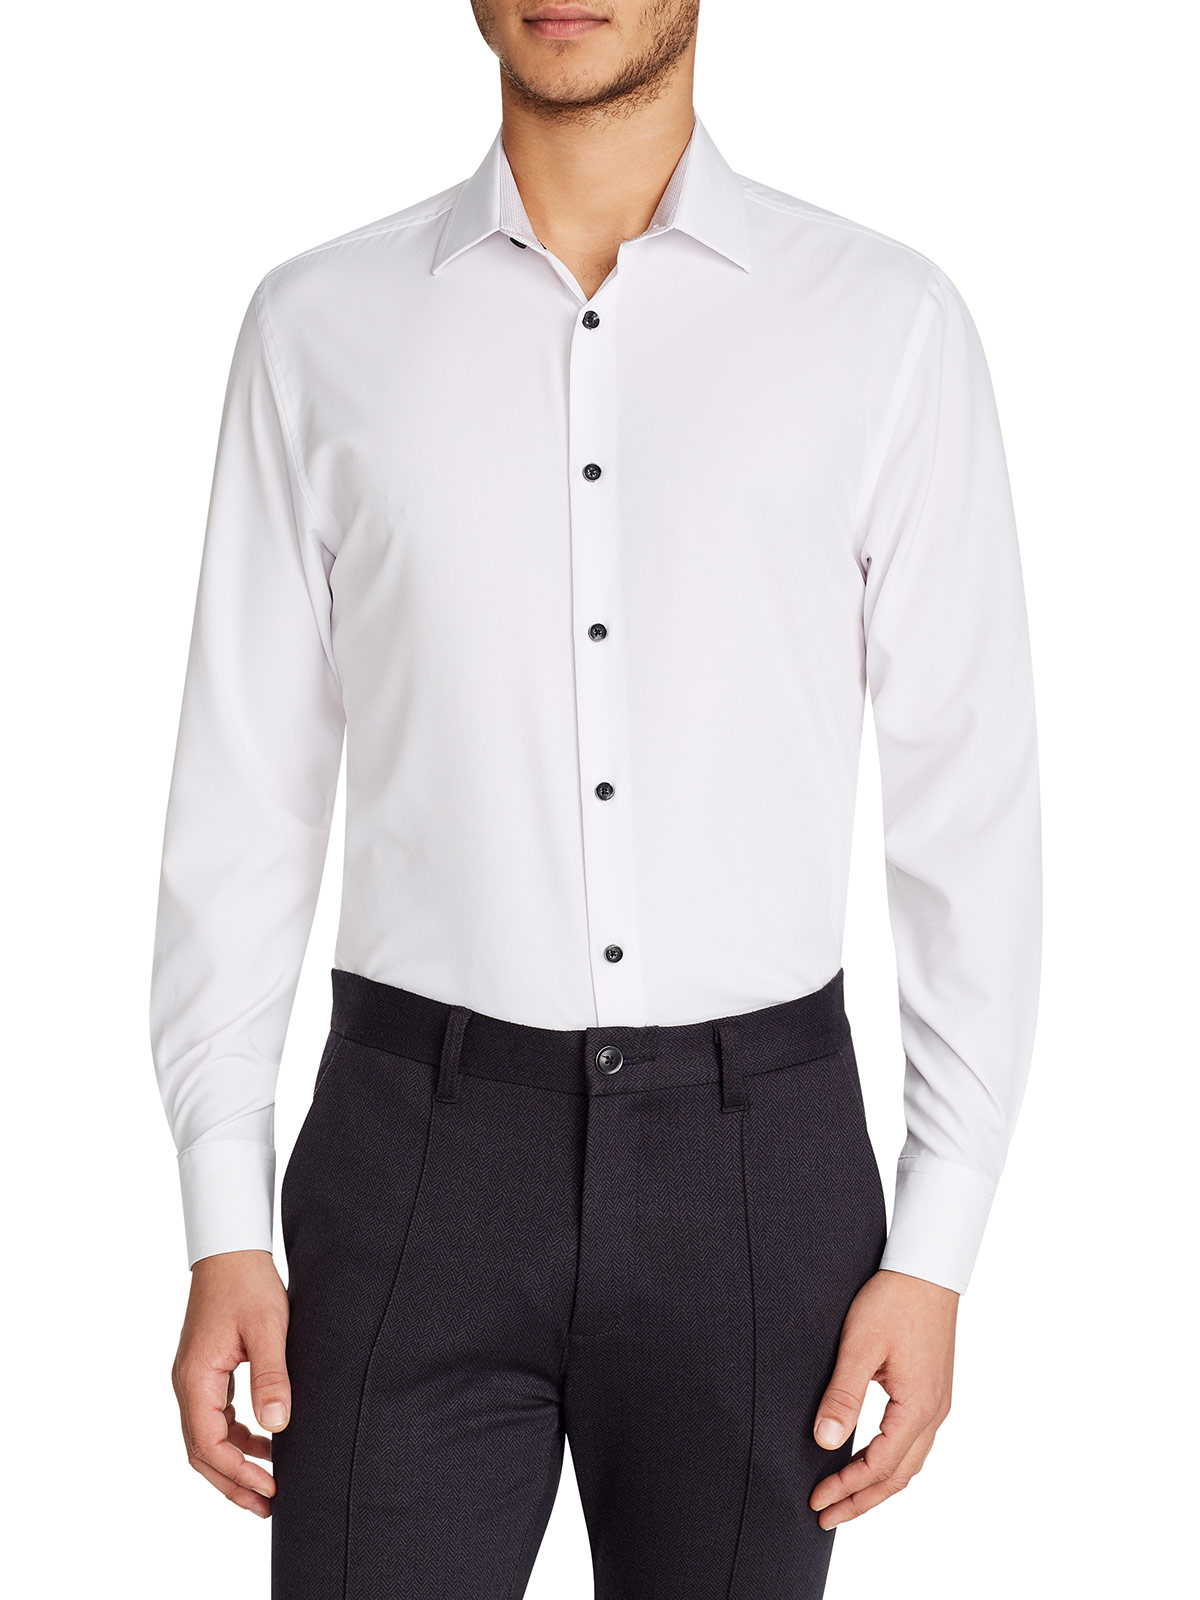 White Solid Cooling Performance Dress Shirt